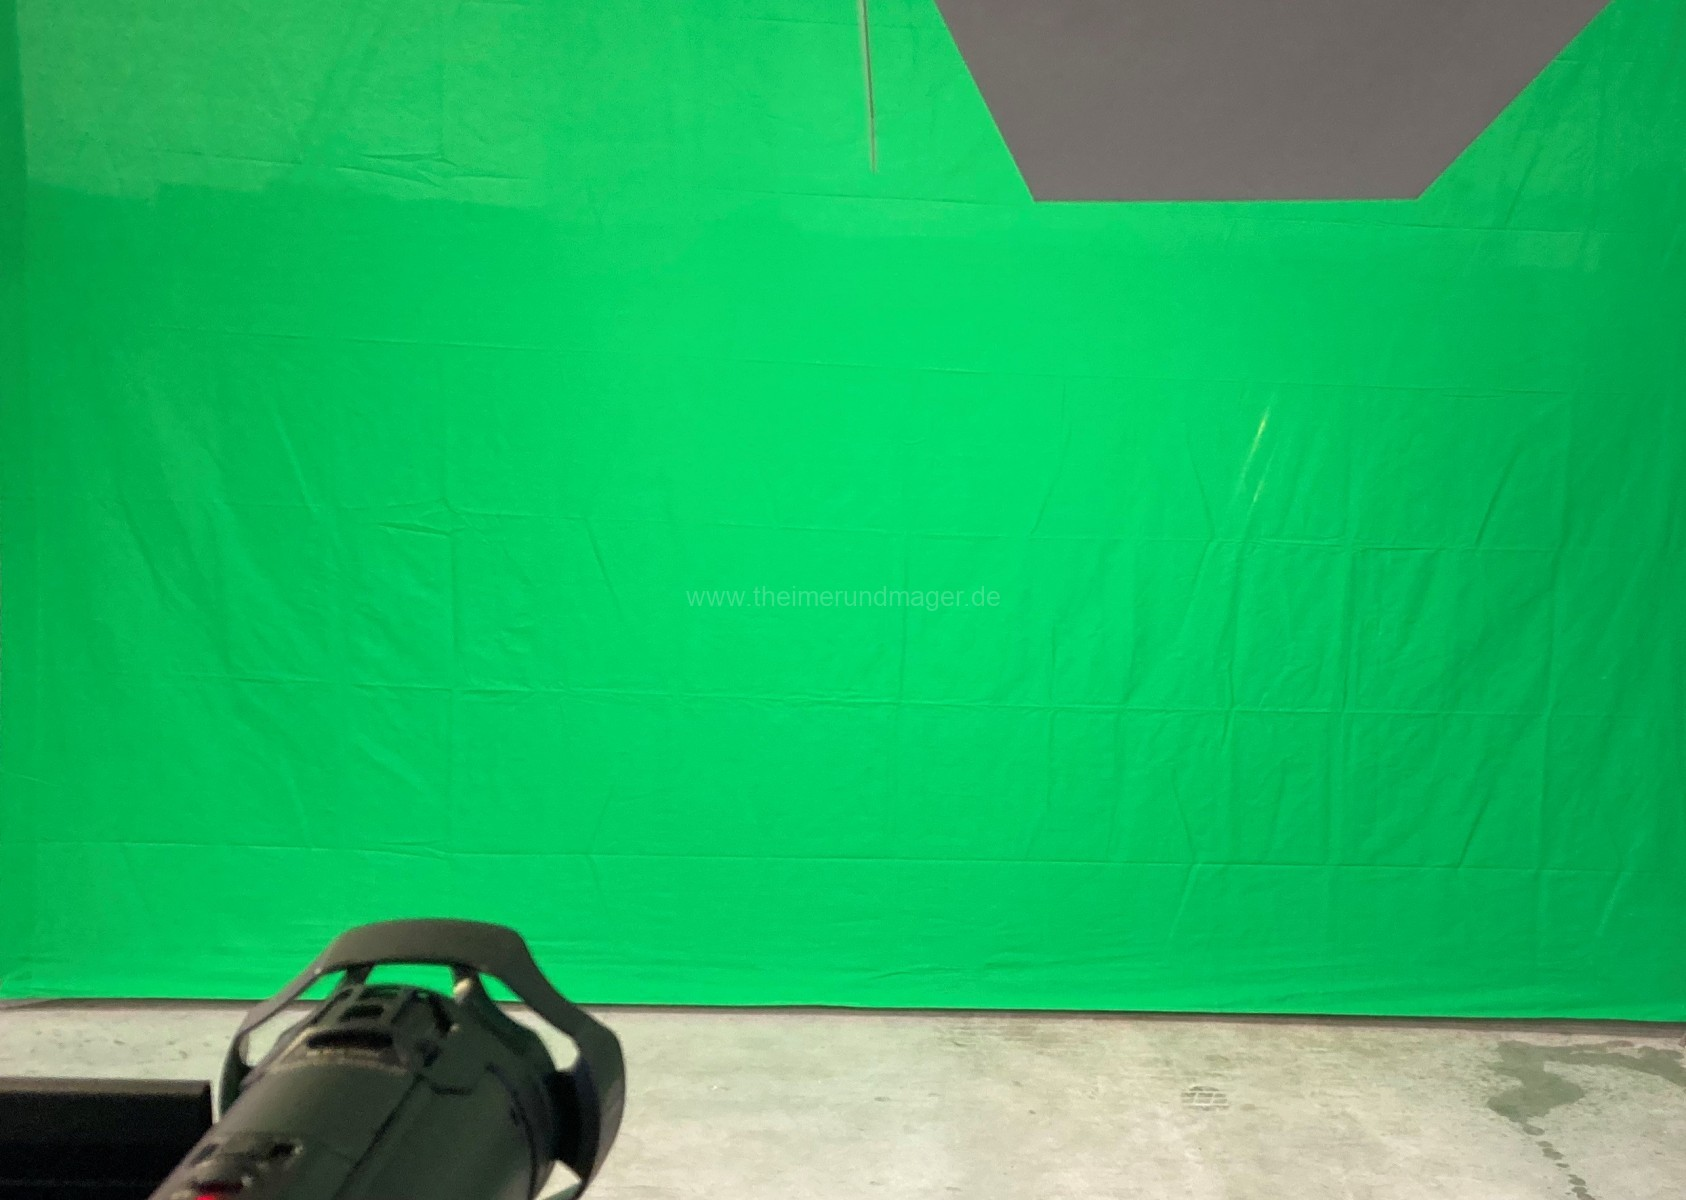 Greenscreen @ theimerundmager.de